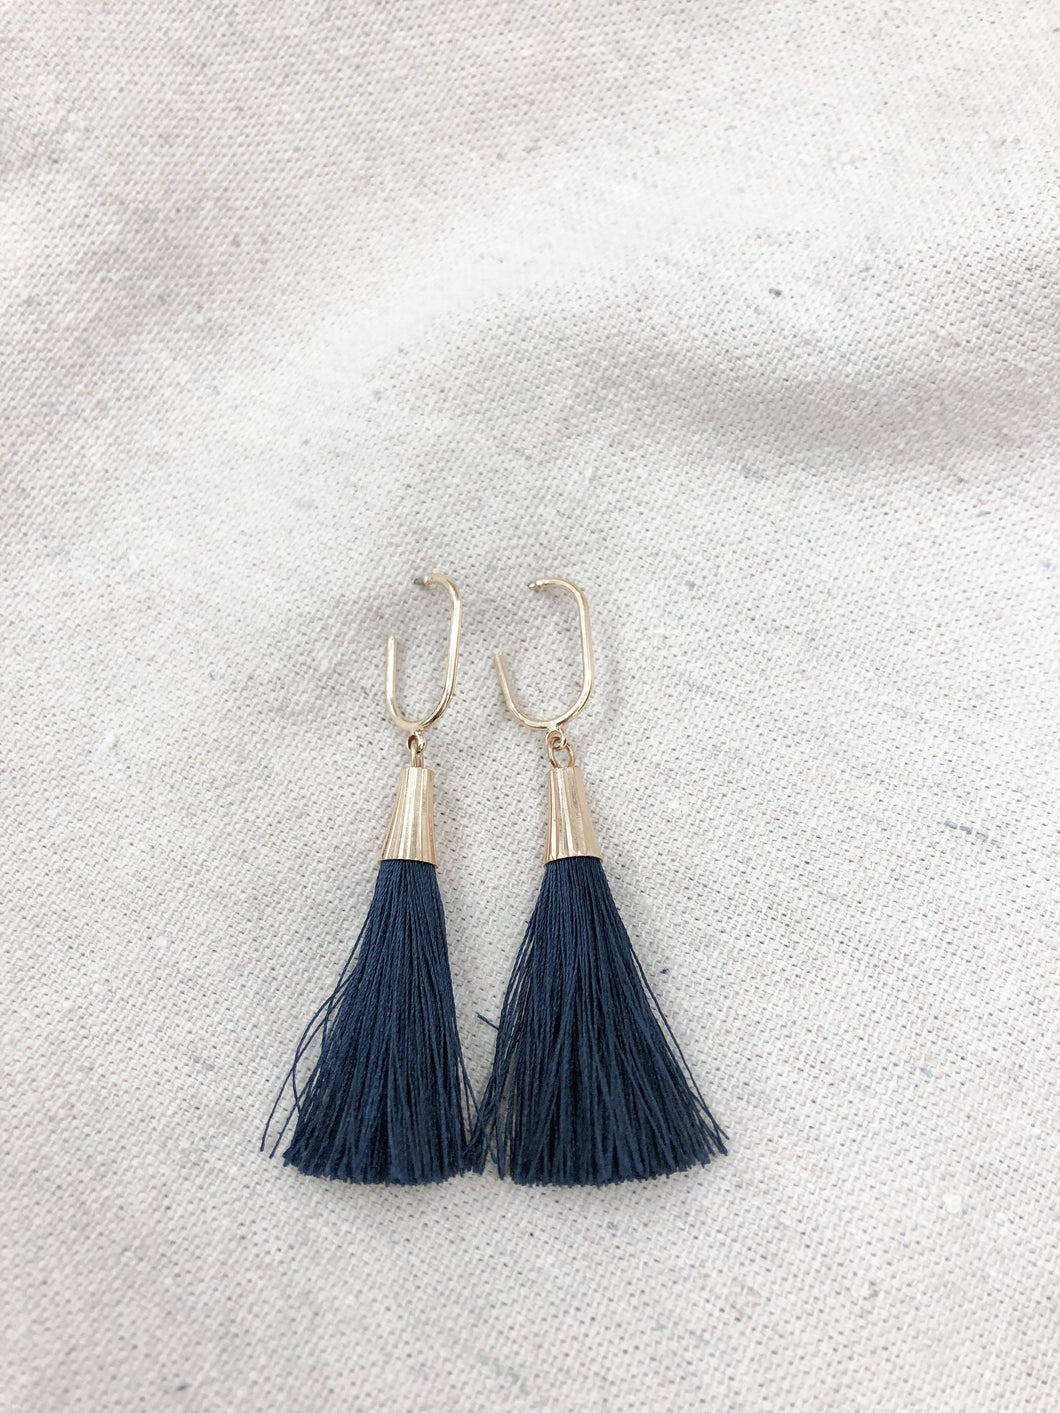 Capped Tassel Earrings in Navy